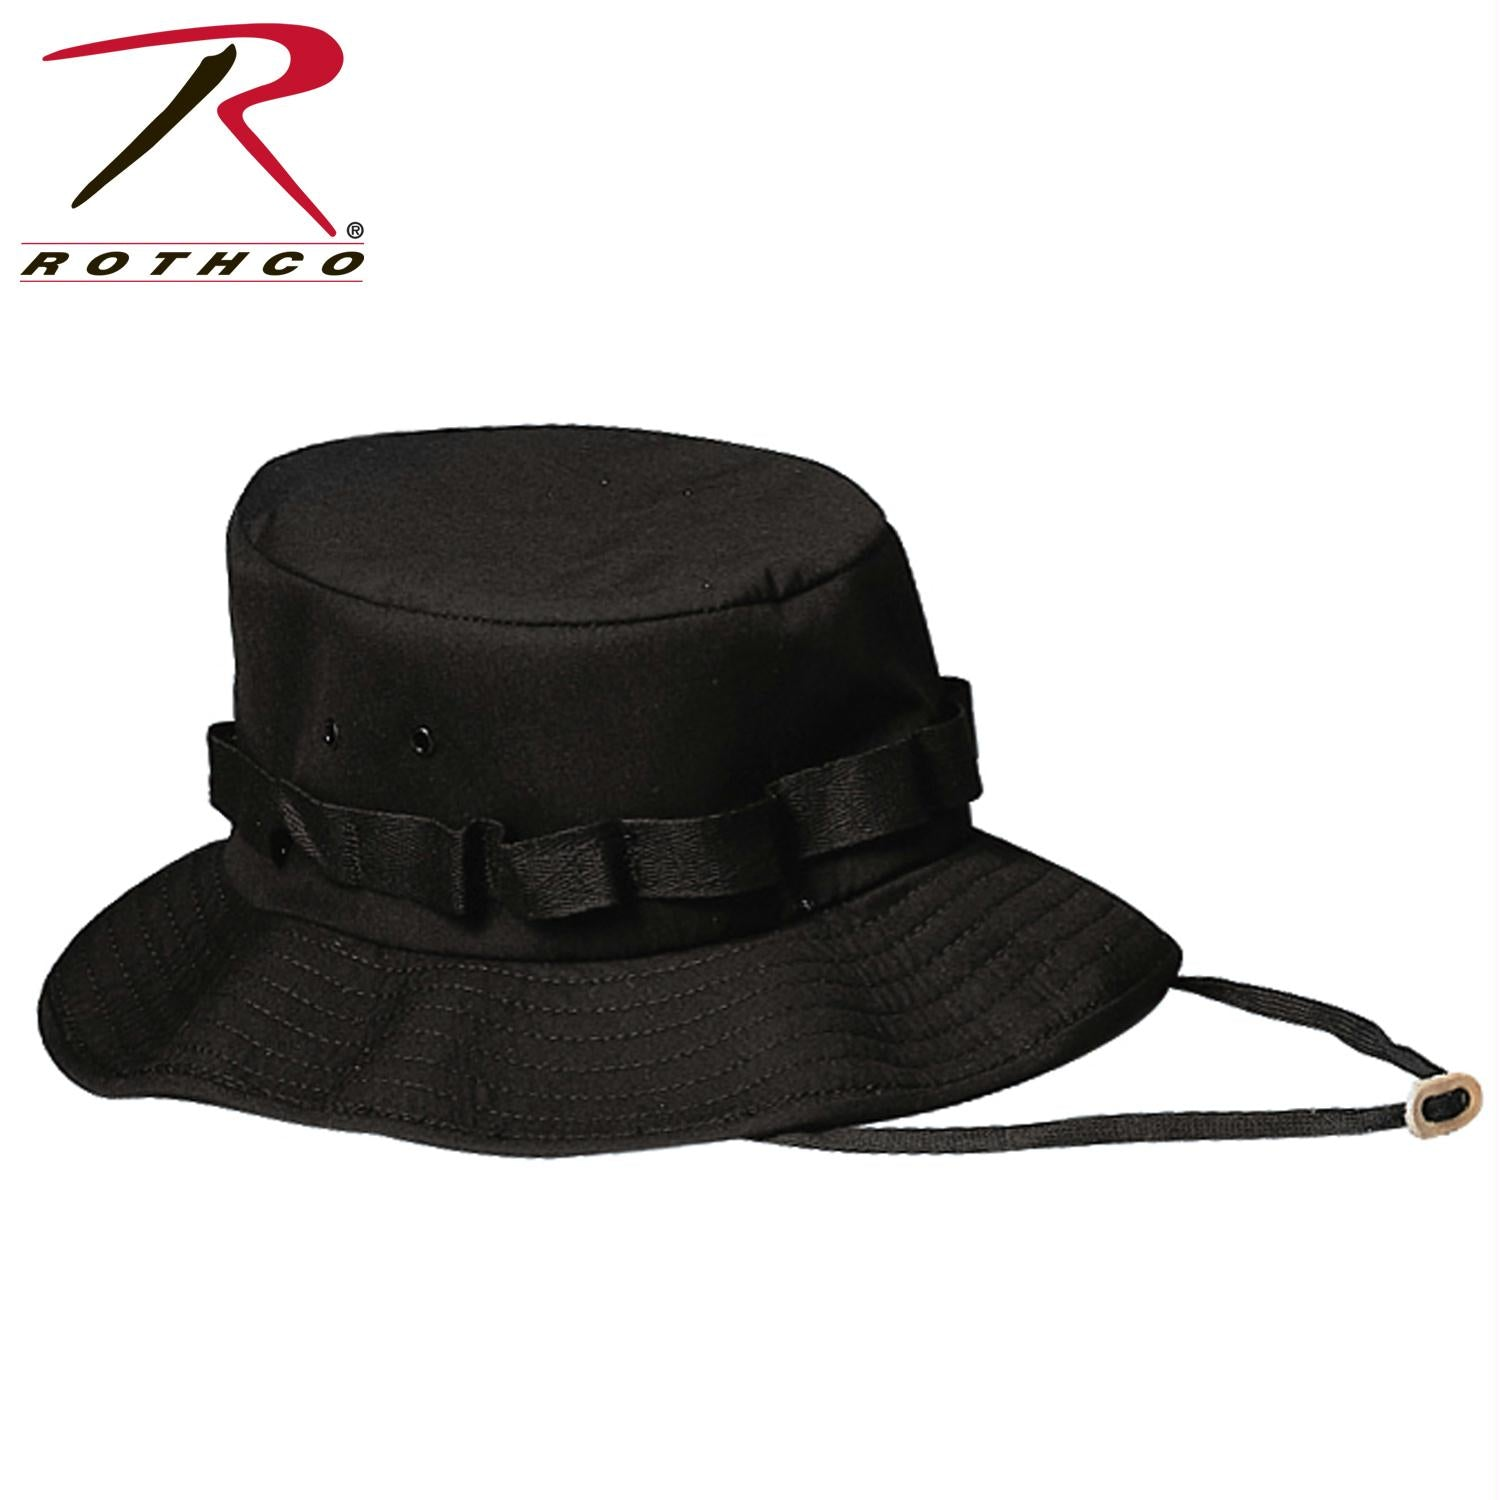 Rothco Jungle Hat - Black / S